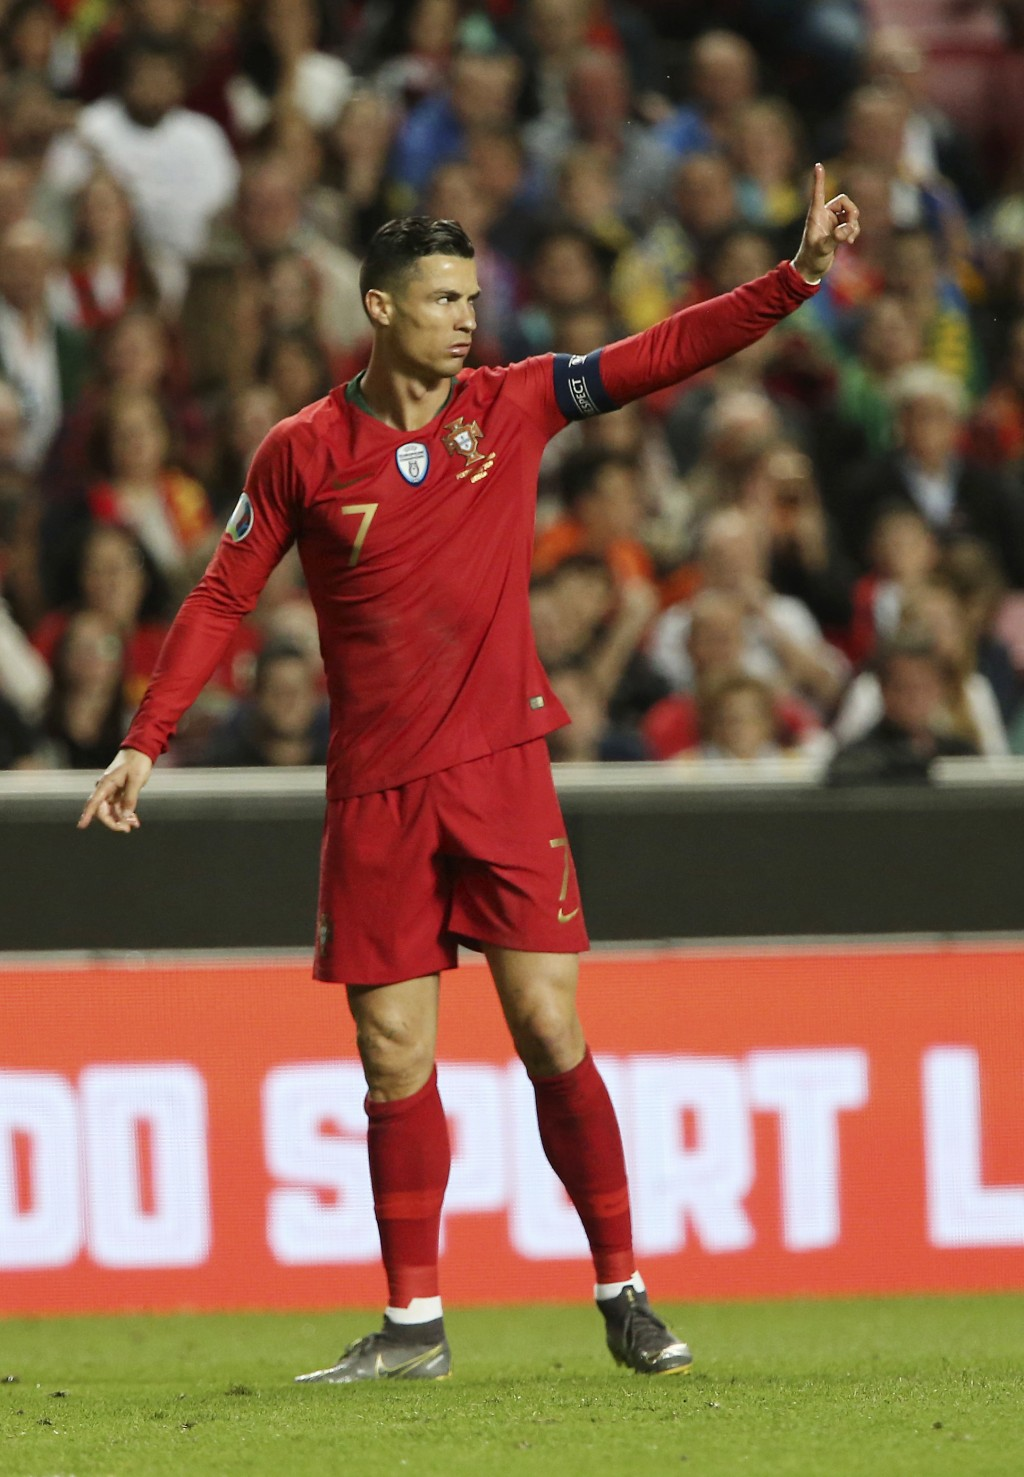 Portugal's Cristiano Ronaldo gestures during the Euro 2020 group B qualifying soccer match between Portugal and Ukraine at the Luz stadium in Lisbon,